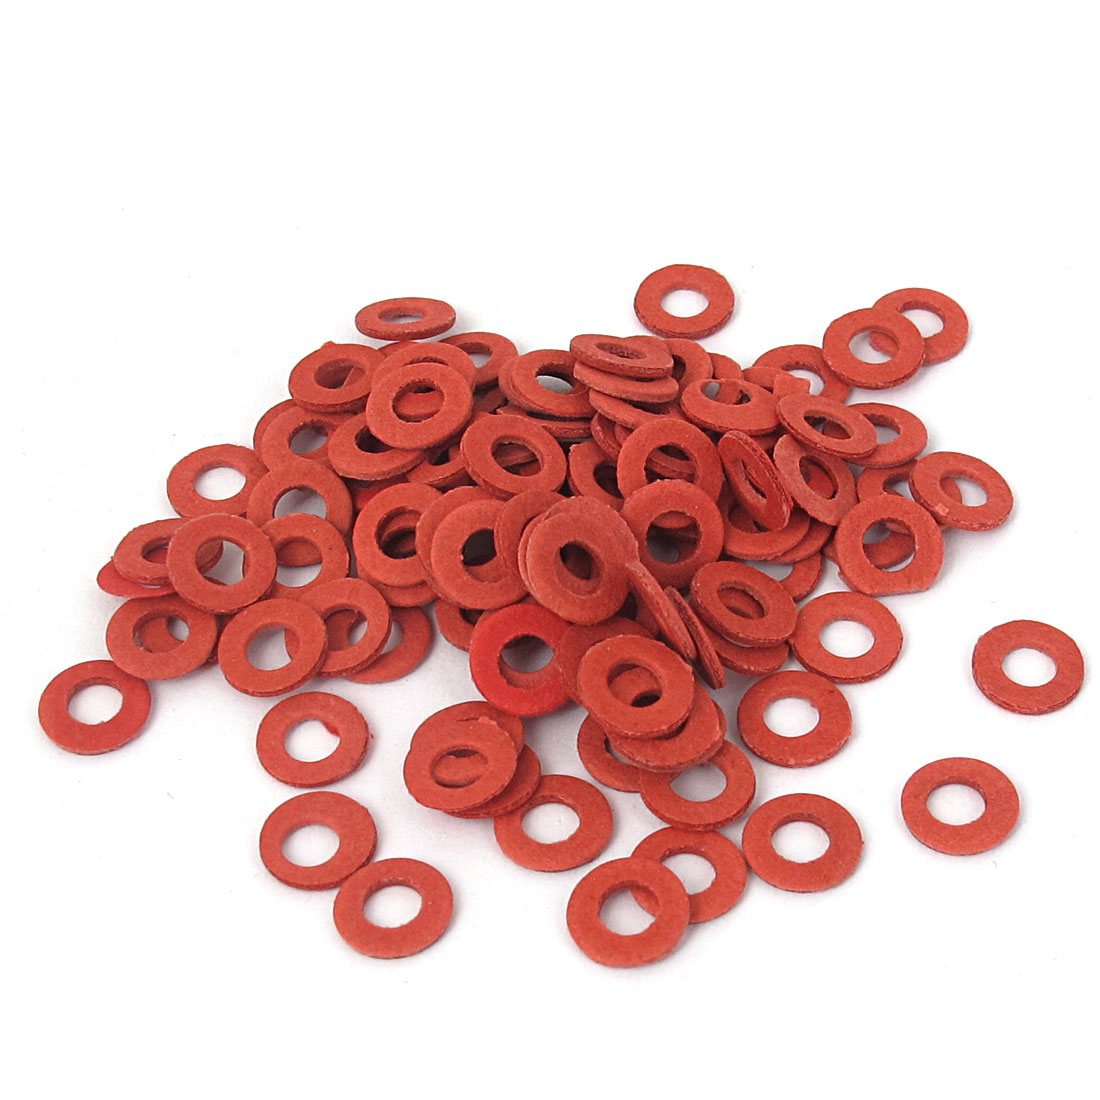 4mmx8mmx1mm Fiber Motherboard Insulating Gasket Flat Washer Red 100pcs